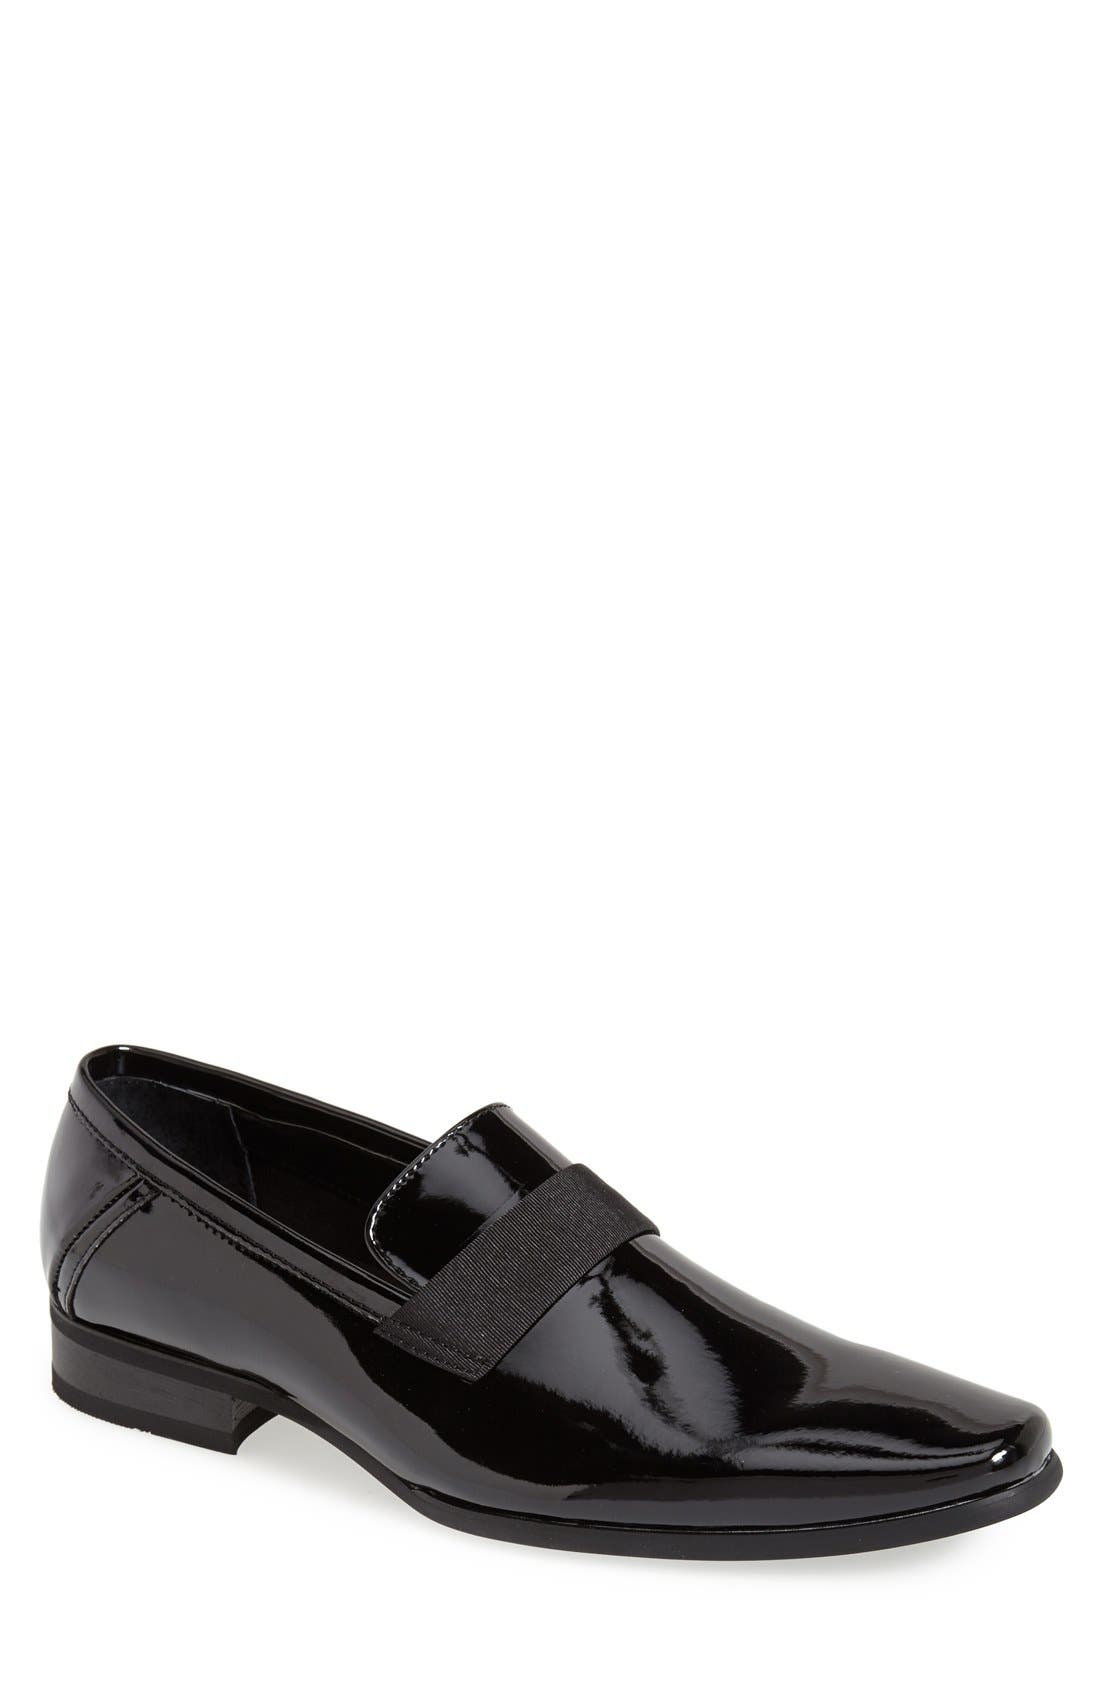 CALVIN KLEIN, 'Bernard' Venetian Loafer, Main thumbnail 1, color, BLACK